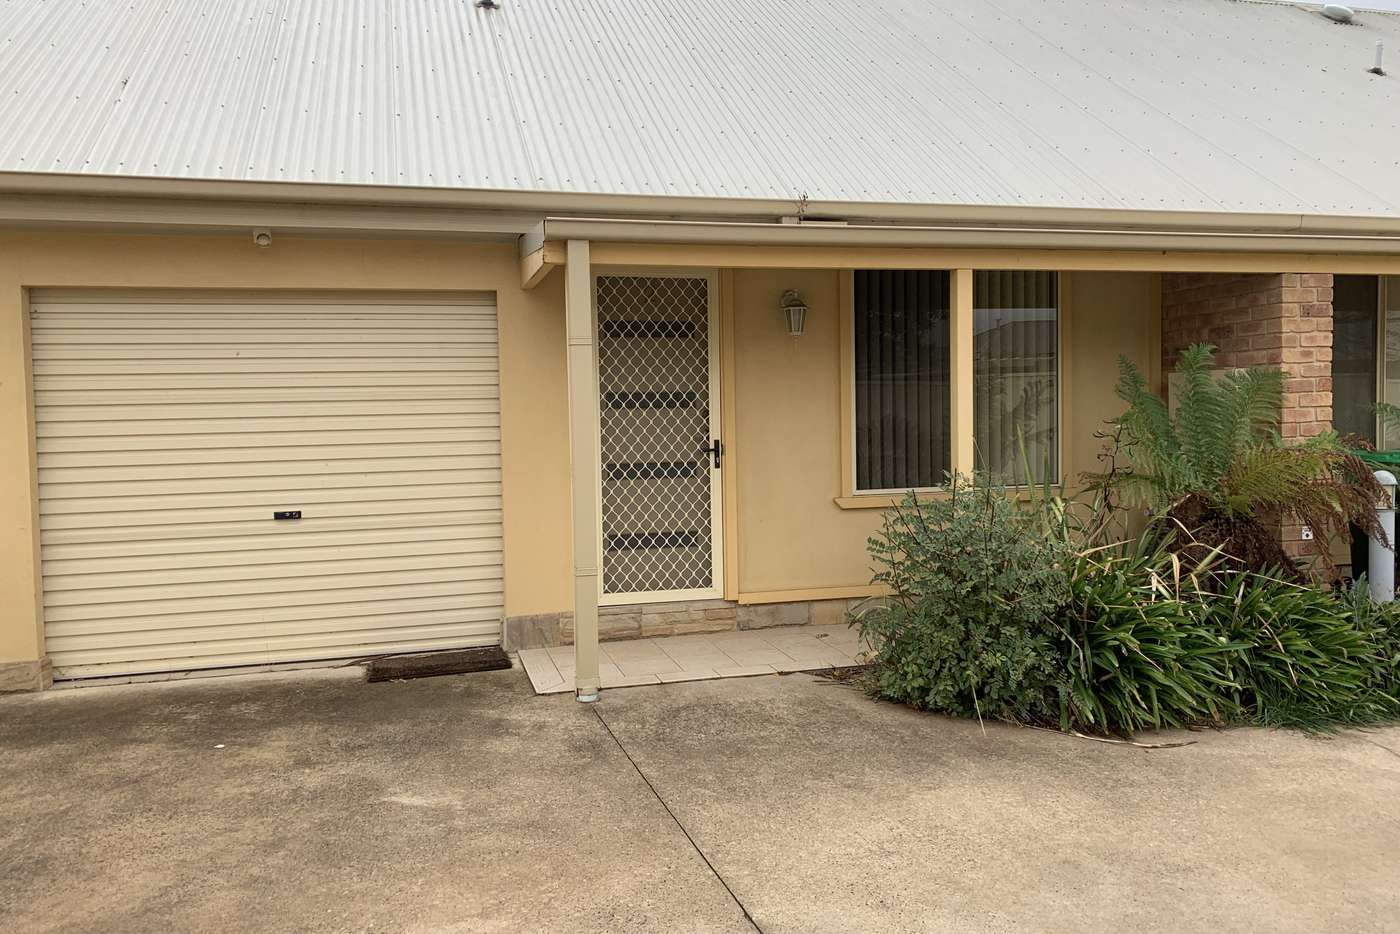 Main view of Homely townhouse listing, Unit 2/35A Mclachlan St, Orange NSW 2800